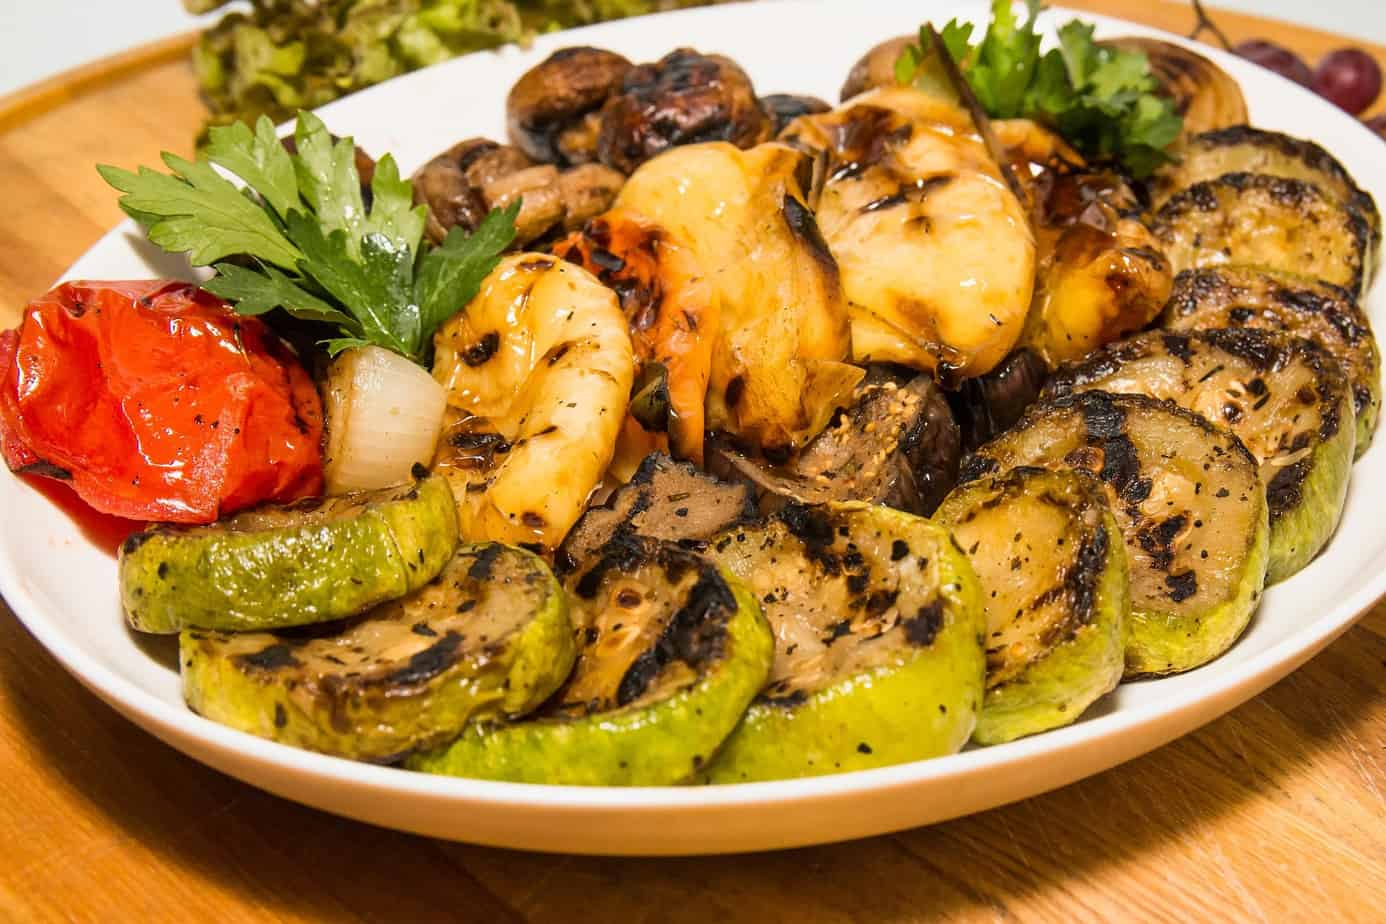 picture of grilled vegetables plated for serving